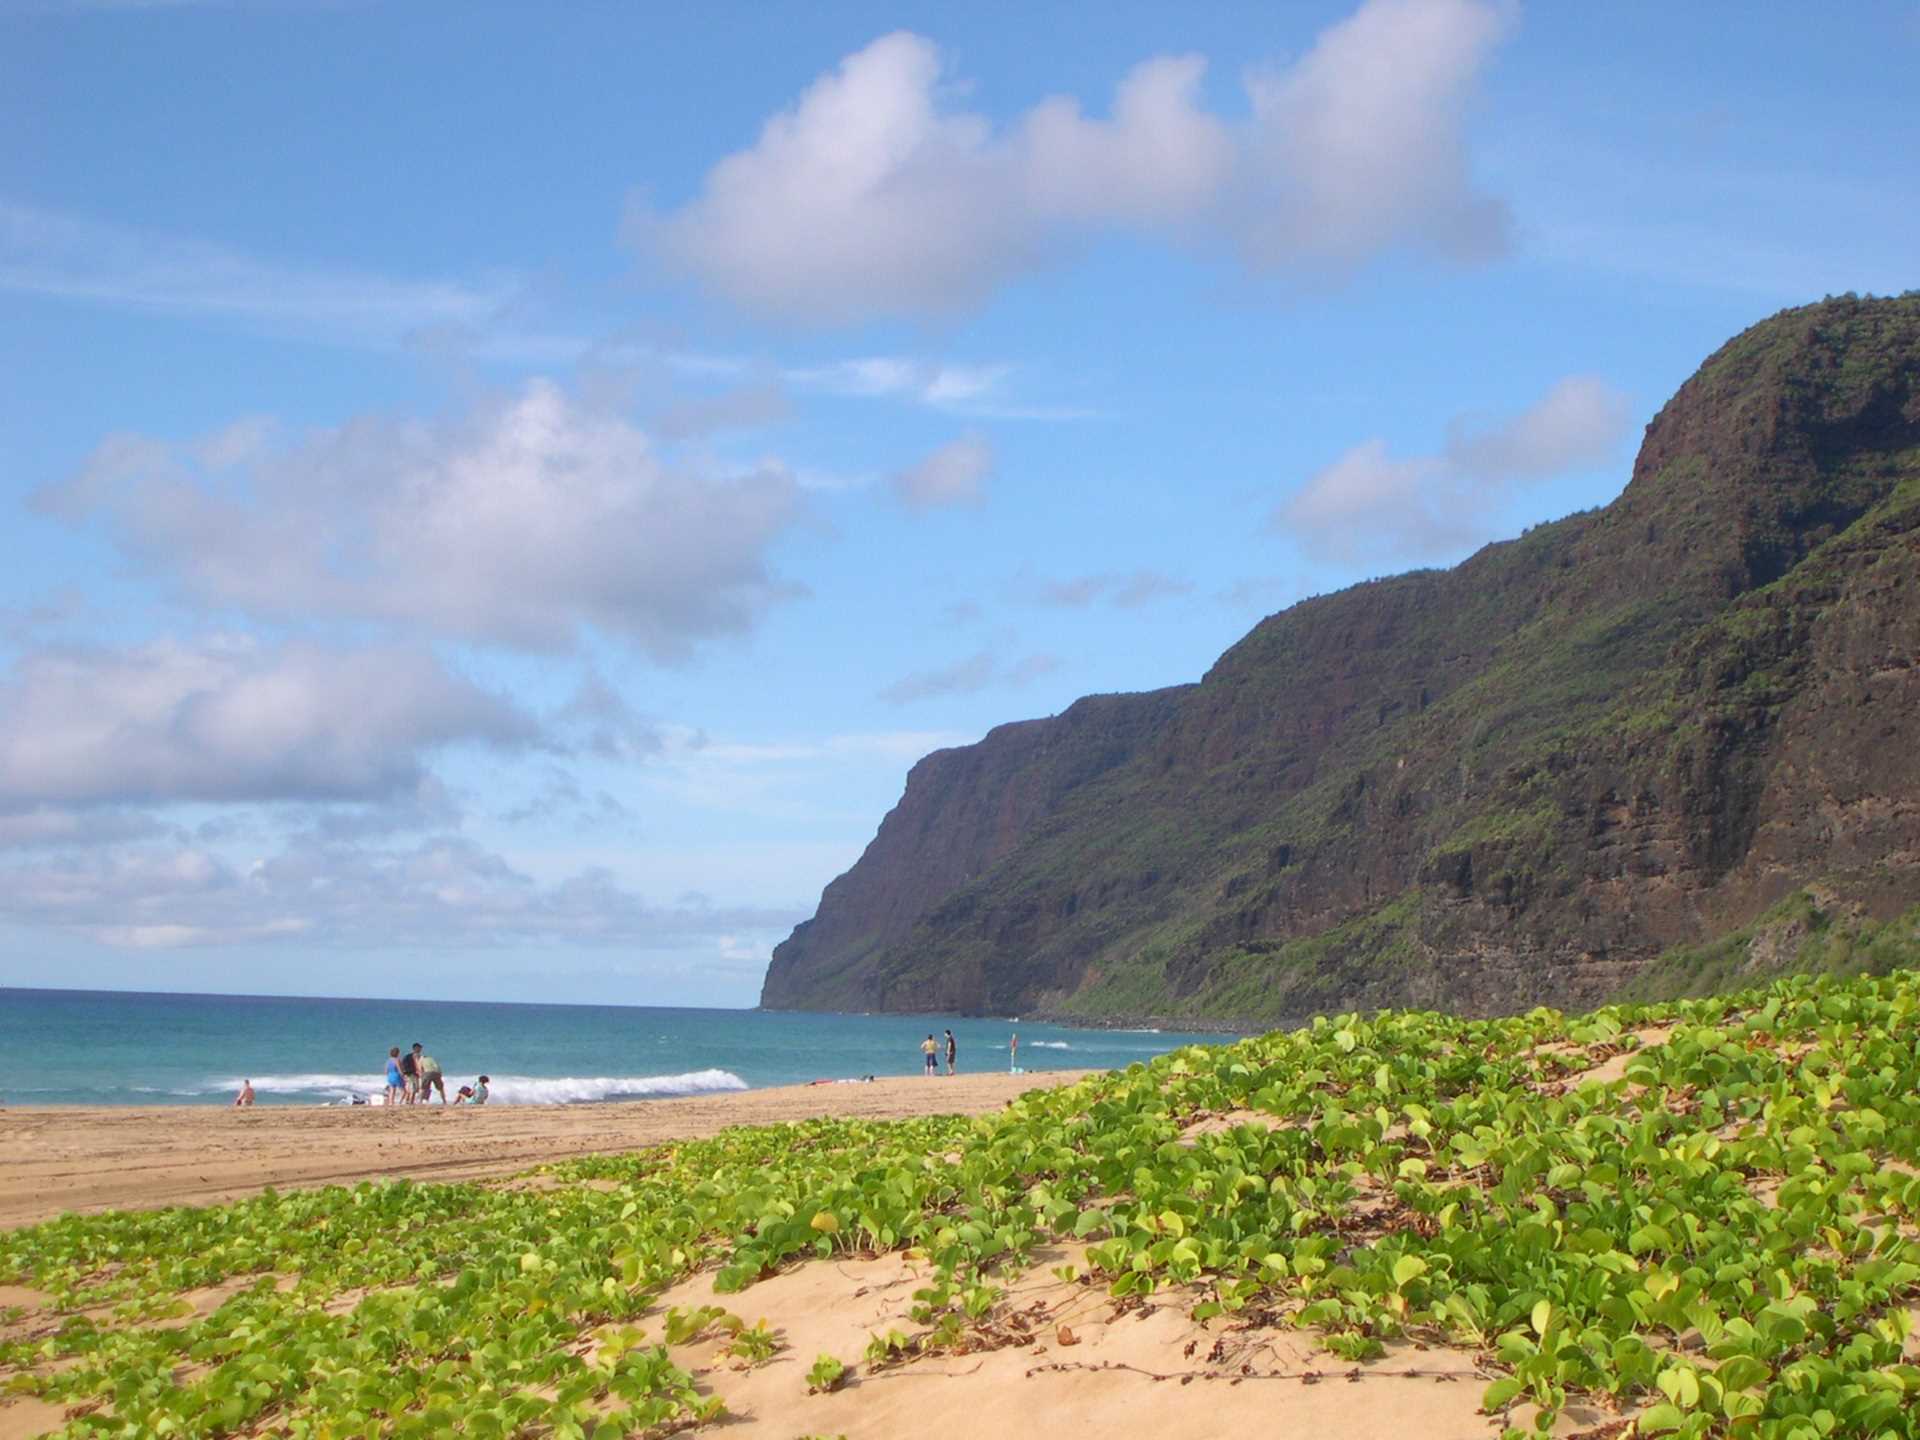 Polihale beach at end of road on West side